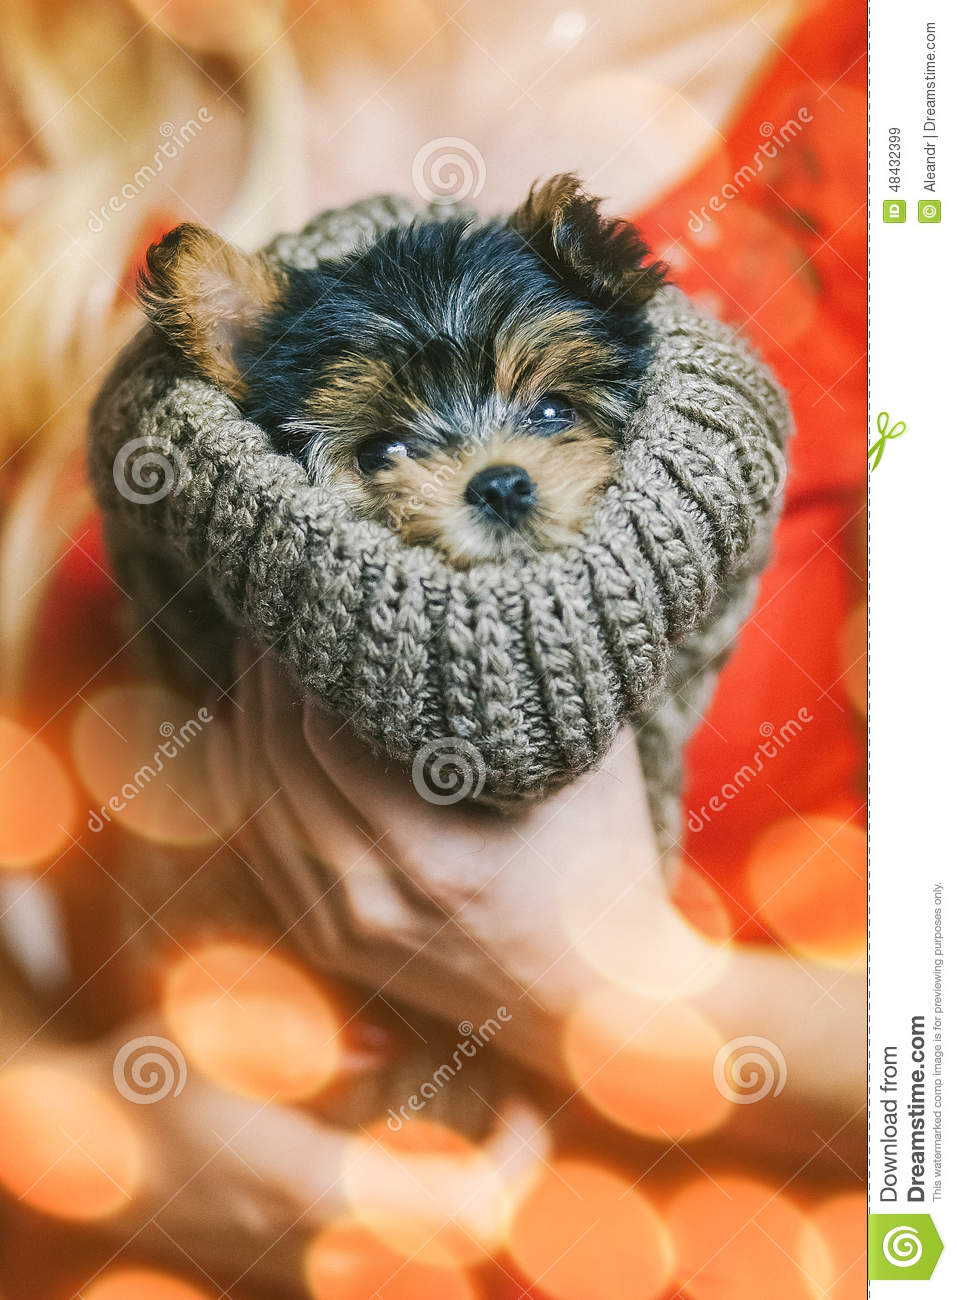 Cute Yorkshire Terrier Puppy In Hands Og Its Owner Stock Photo